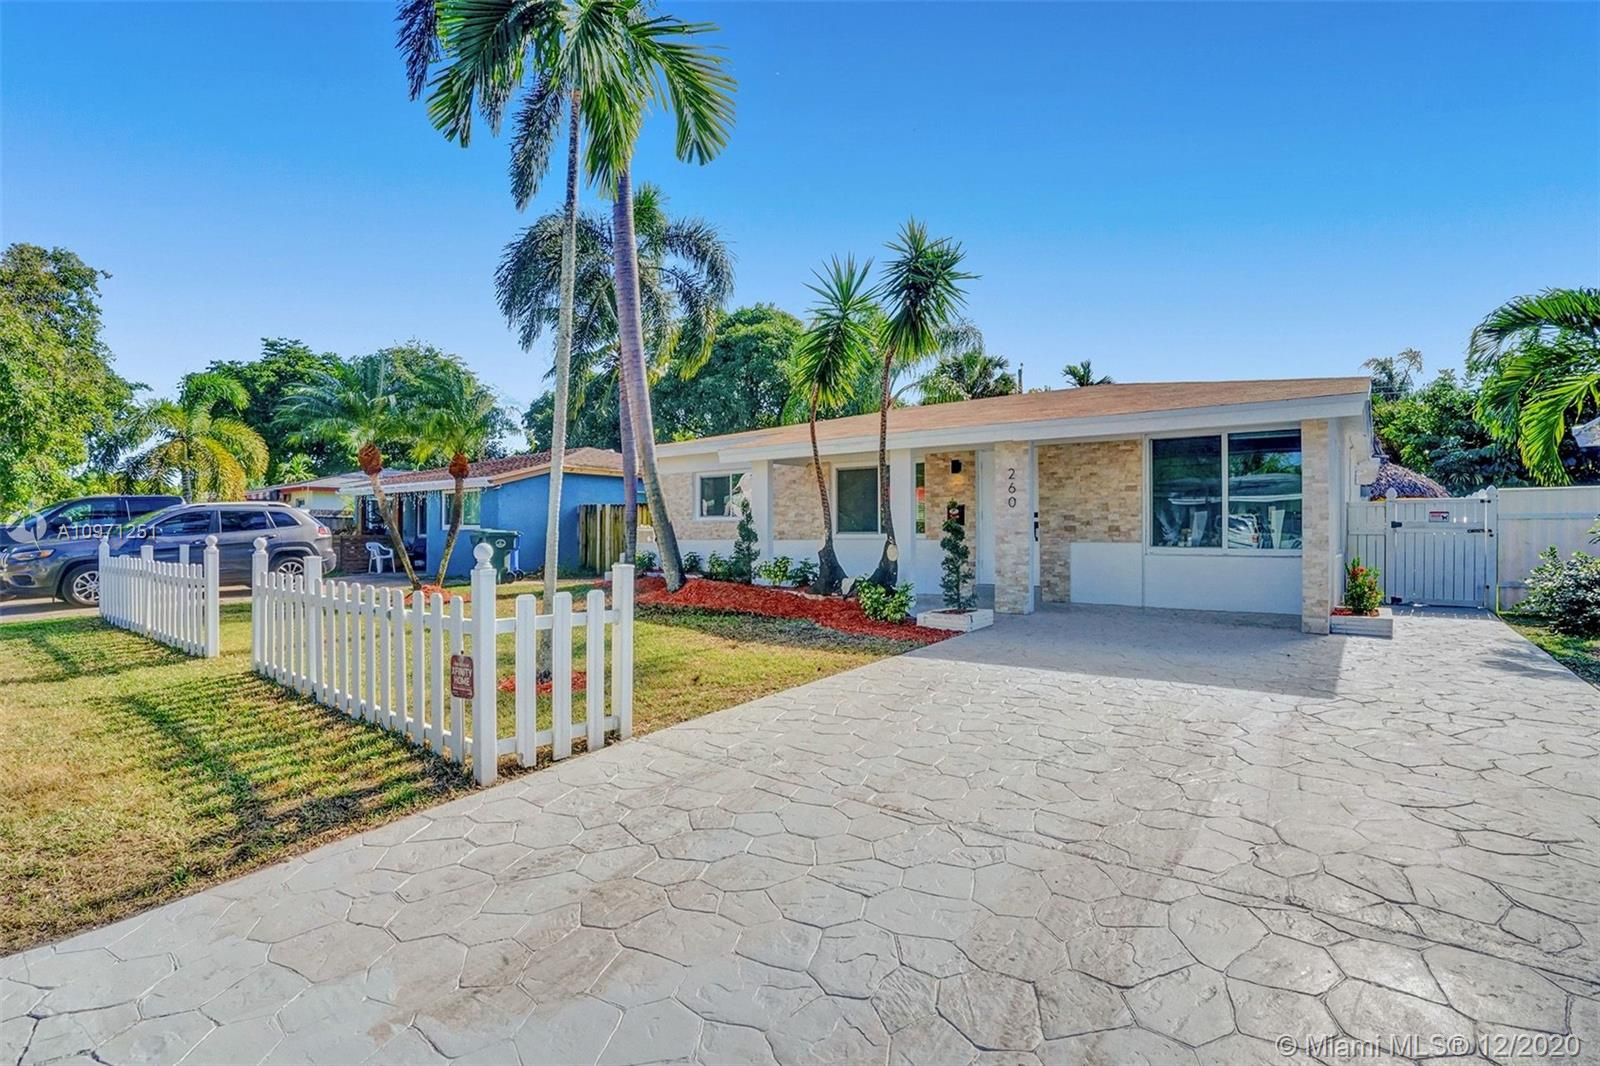 BEAUTIFULLY FULLY REMODELED 3 BEDROOM 2 BATHROOM HOME WITH VERY LARGE POOL IN THE HEART OF OAKLAND PARK! PERFECT TURN-KEY HOME OR VACATION RENTAL OPPORTUNITY! HOME FEATURES PARTIAL HURRICANE IMPACT WINDOWS AND DOORS, 2020 SHINGLE ROOF, 2017 A/C UNIT, BRAND NEW 2020 TANKLESS WATER HEATER, SEPARATE LAUNDRY ROOM WITH BRAND NEW WASHER AND DRYER, NEW BATHROOMS, IRRIGATION SYSTEM WITH NEW PLANTS, NEW CUSTOM KITCHEN WITH HIGH-END EUROPEAN CABINETS, QUARTZ COUNTERTOP, RECESSED LIGHTING THROUGHOUT, BACKYARD WITH LARGE POOL NICE FOR ENTERTAINMENT, SPACIOUS DRIVEWAY, FRESHLY PAINTED INSIDE/OUT, SMALL TIKKI IN THE BACK, STORAGE SHED CONVEY... MINUTES FROM SCHOOLS, BEACH, SHOPPING PLAZAS, ETC... HURRY THIS WONT LAST LONG!!